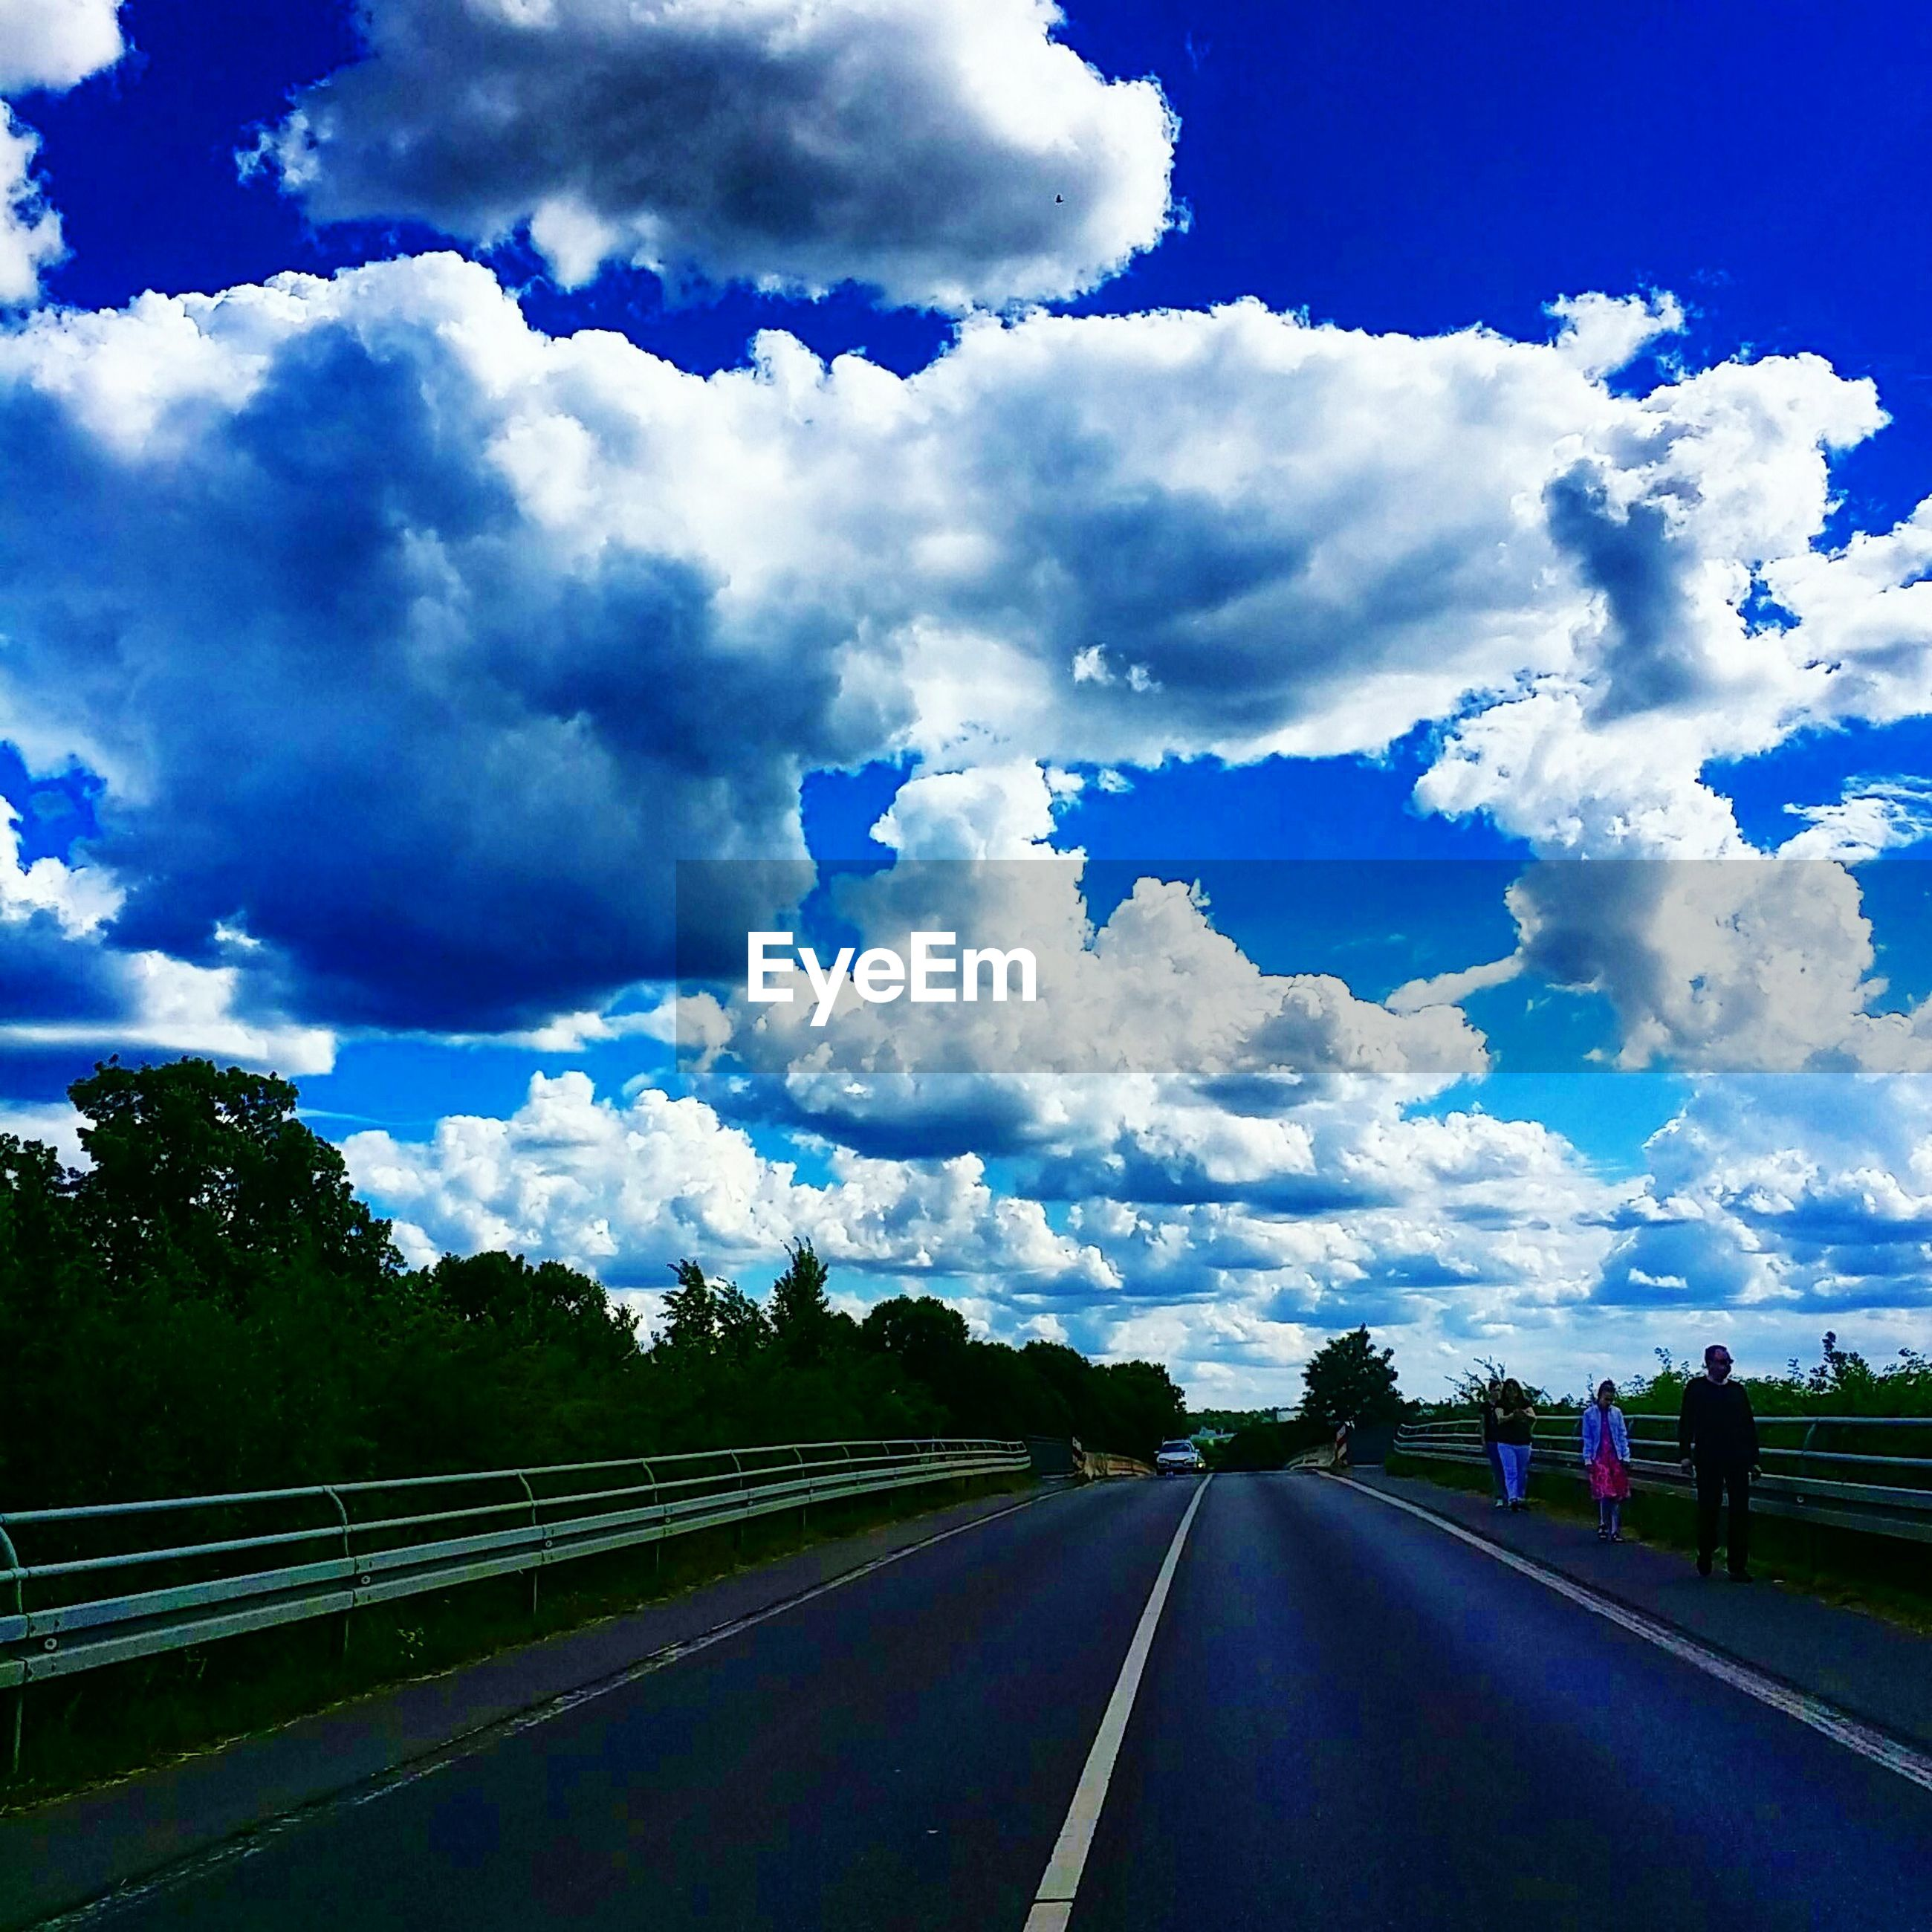 sky, transportation, cloud - sky, the way forward, road, cloudy, diminishing perspective, vanishing point, road marking, cloud, blue, nature, landscape, country road, highway, tree, day, empty, mode of transport, car